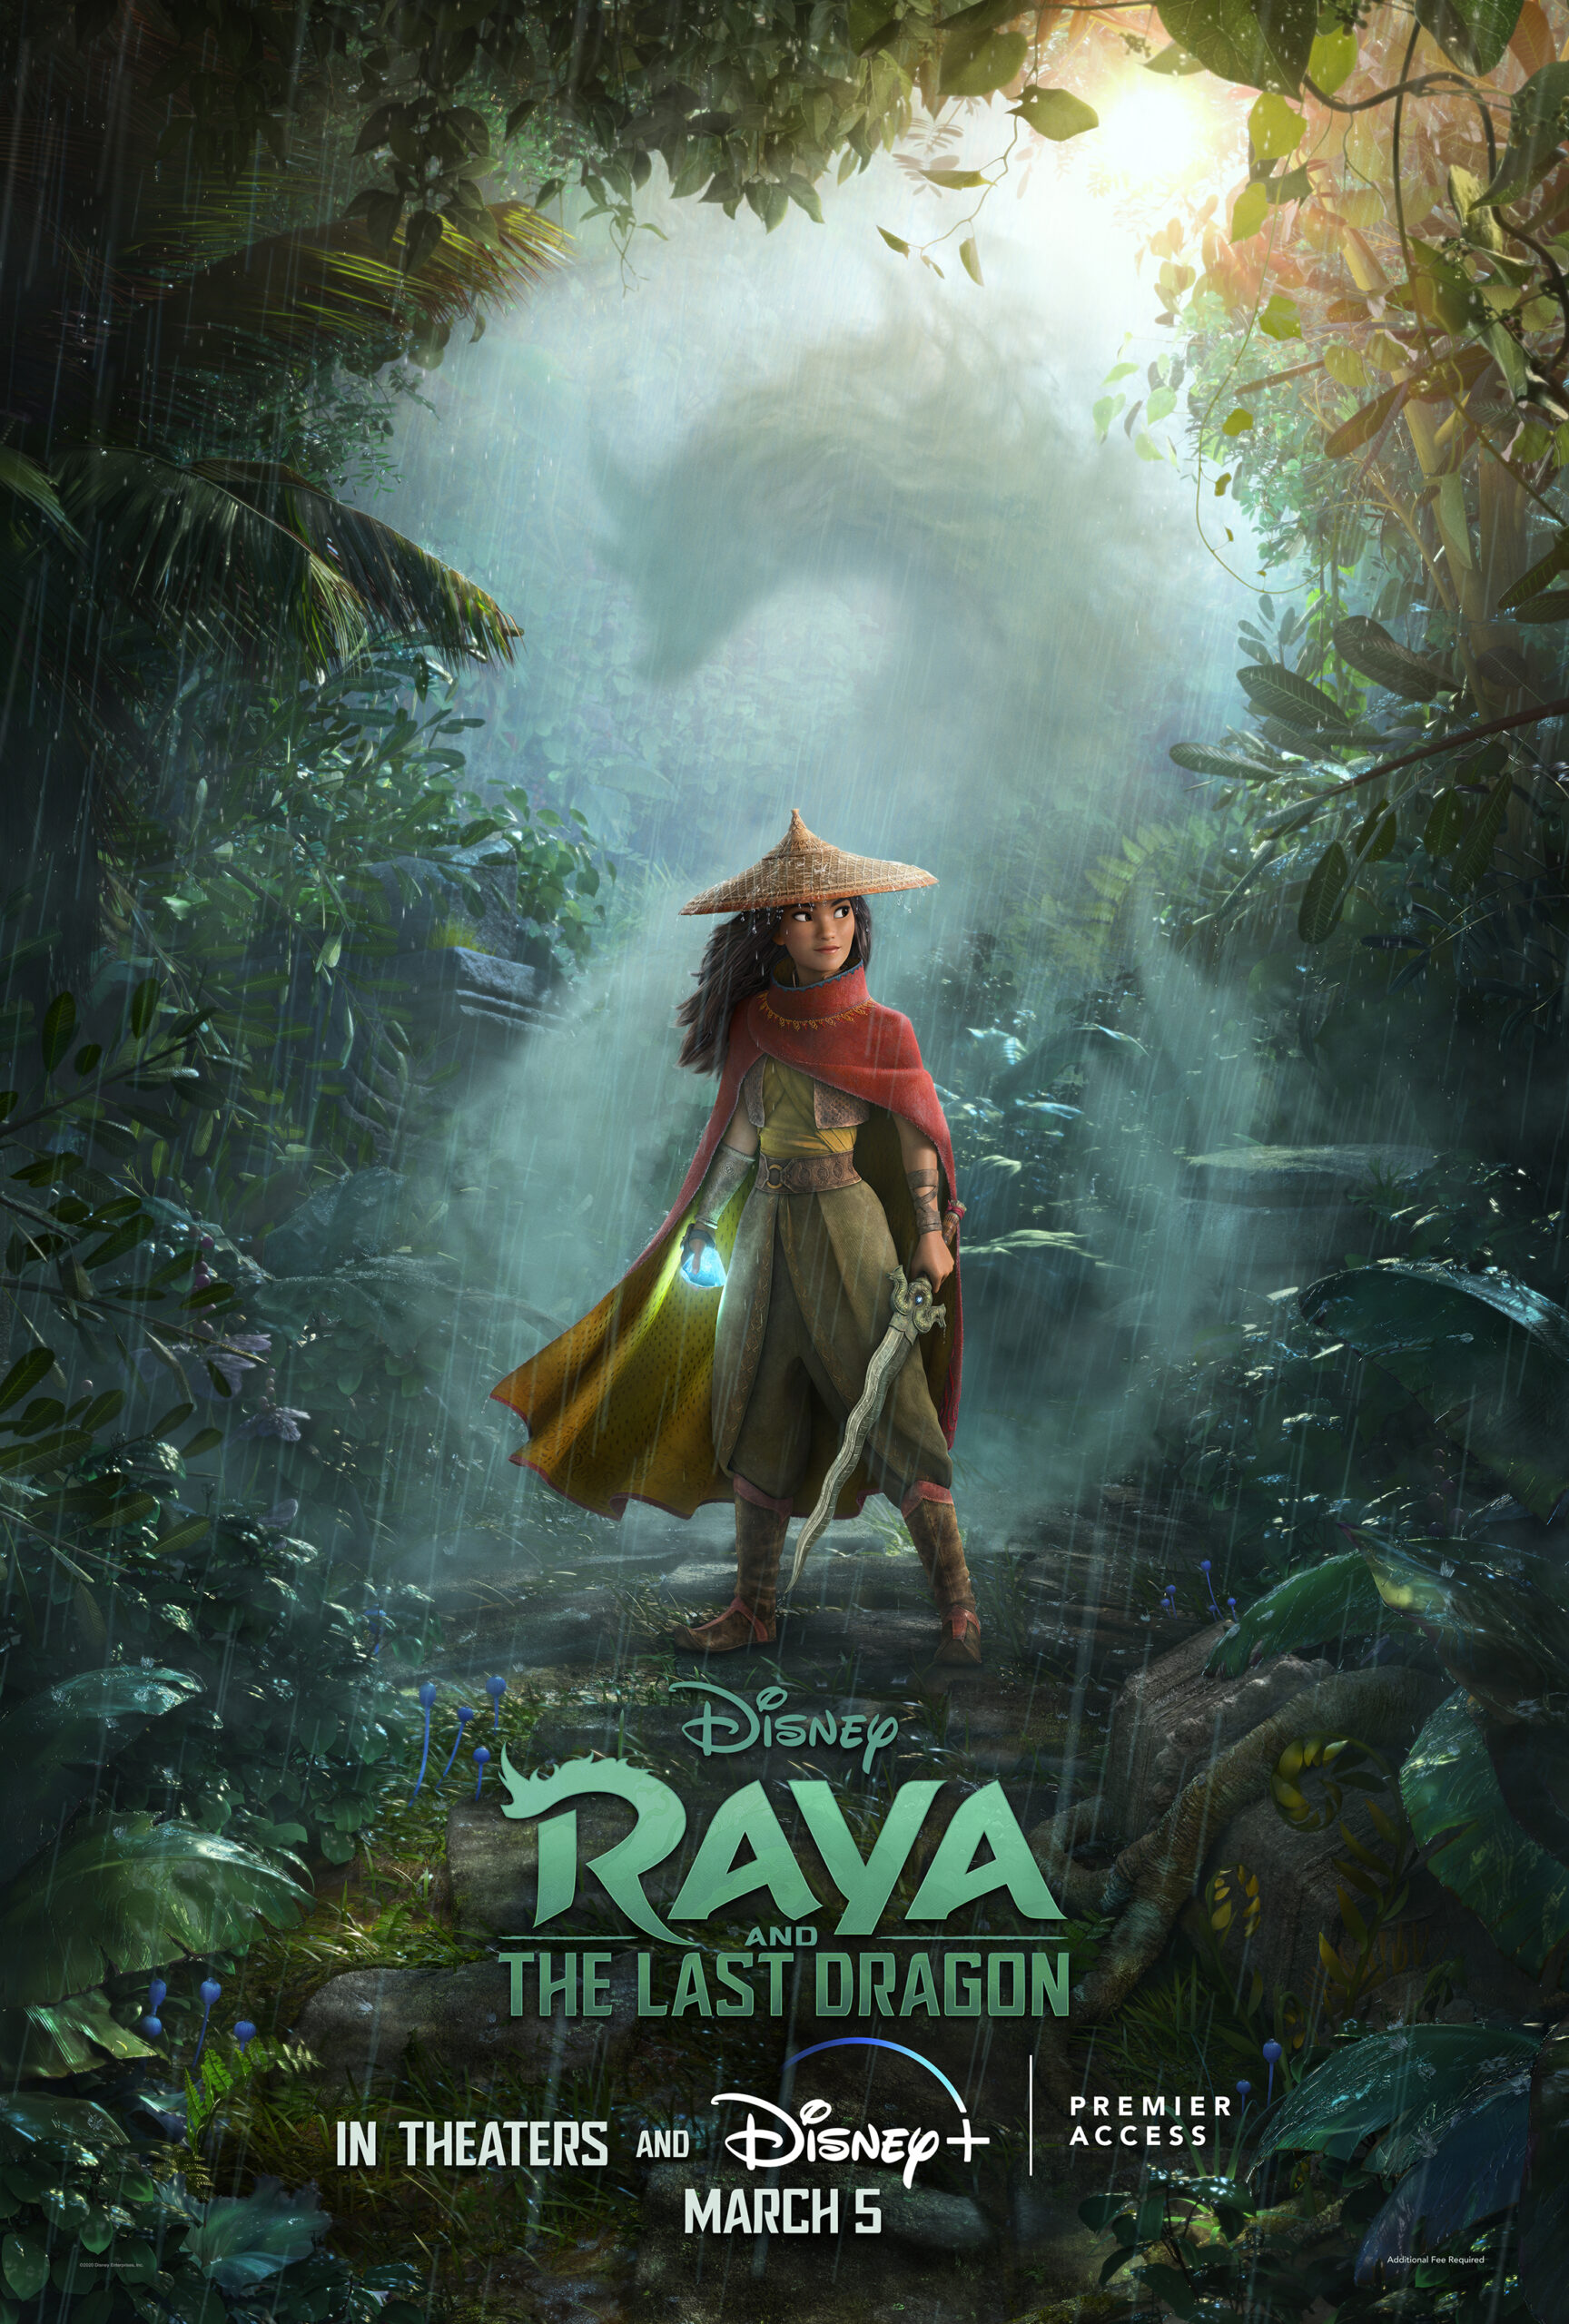 Raya and the Last Dragon is the latest Disney Princess to enter the Disney Family.......and this? A full guide to the film, our review, and a few products you MAY want to buy to celebrate!